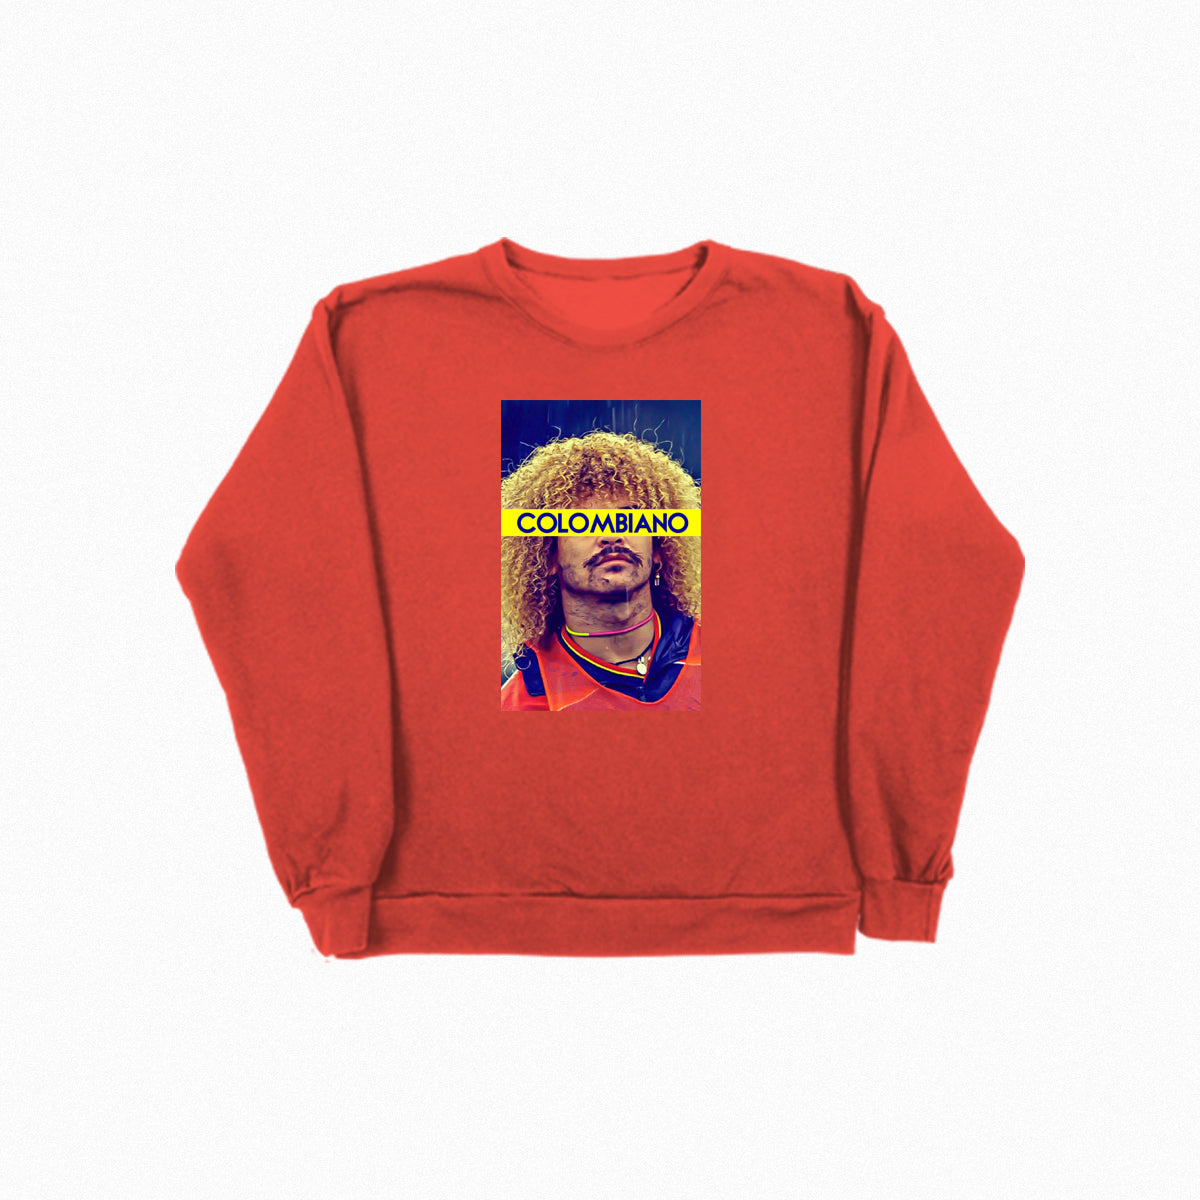 El Pibe Colombiano Crew Neck - Red - TOPS, TSS CUSTOM GRPHX, SNEAKER STUDIO, GOLDEN GILT, DESIGN BY TSS